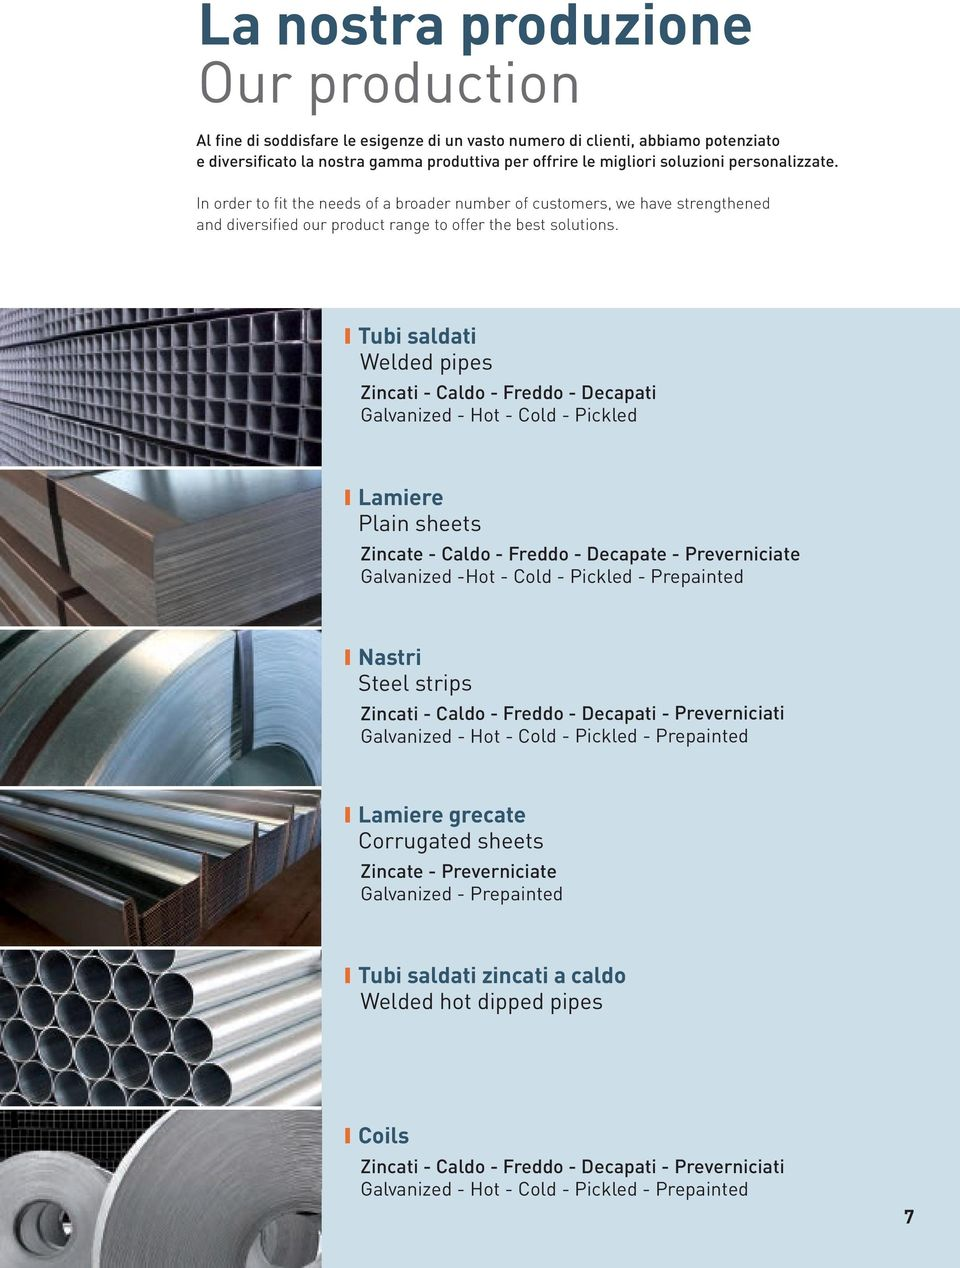 Tubi saldati Welded pipes Zincati - Caldo - Freddo - Decapati Galvanized - Hot - Cold - Pickled Lamiere Plain sheets Zincate - Caldo - Freddo - Decapate - Preverniciate Galvanized -Hot - Cold -